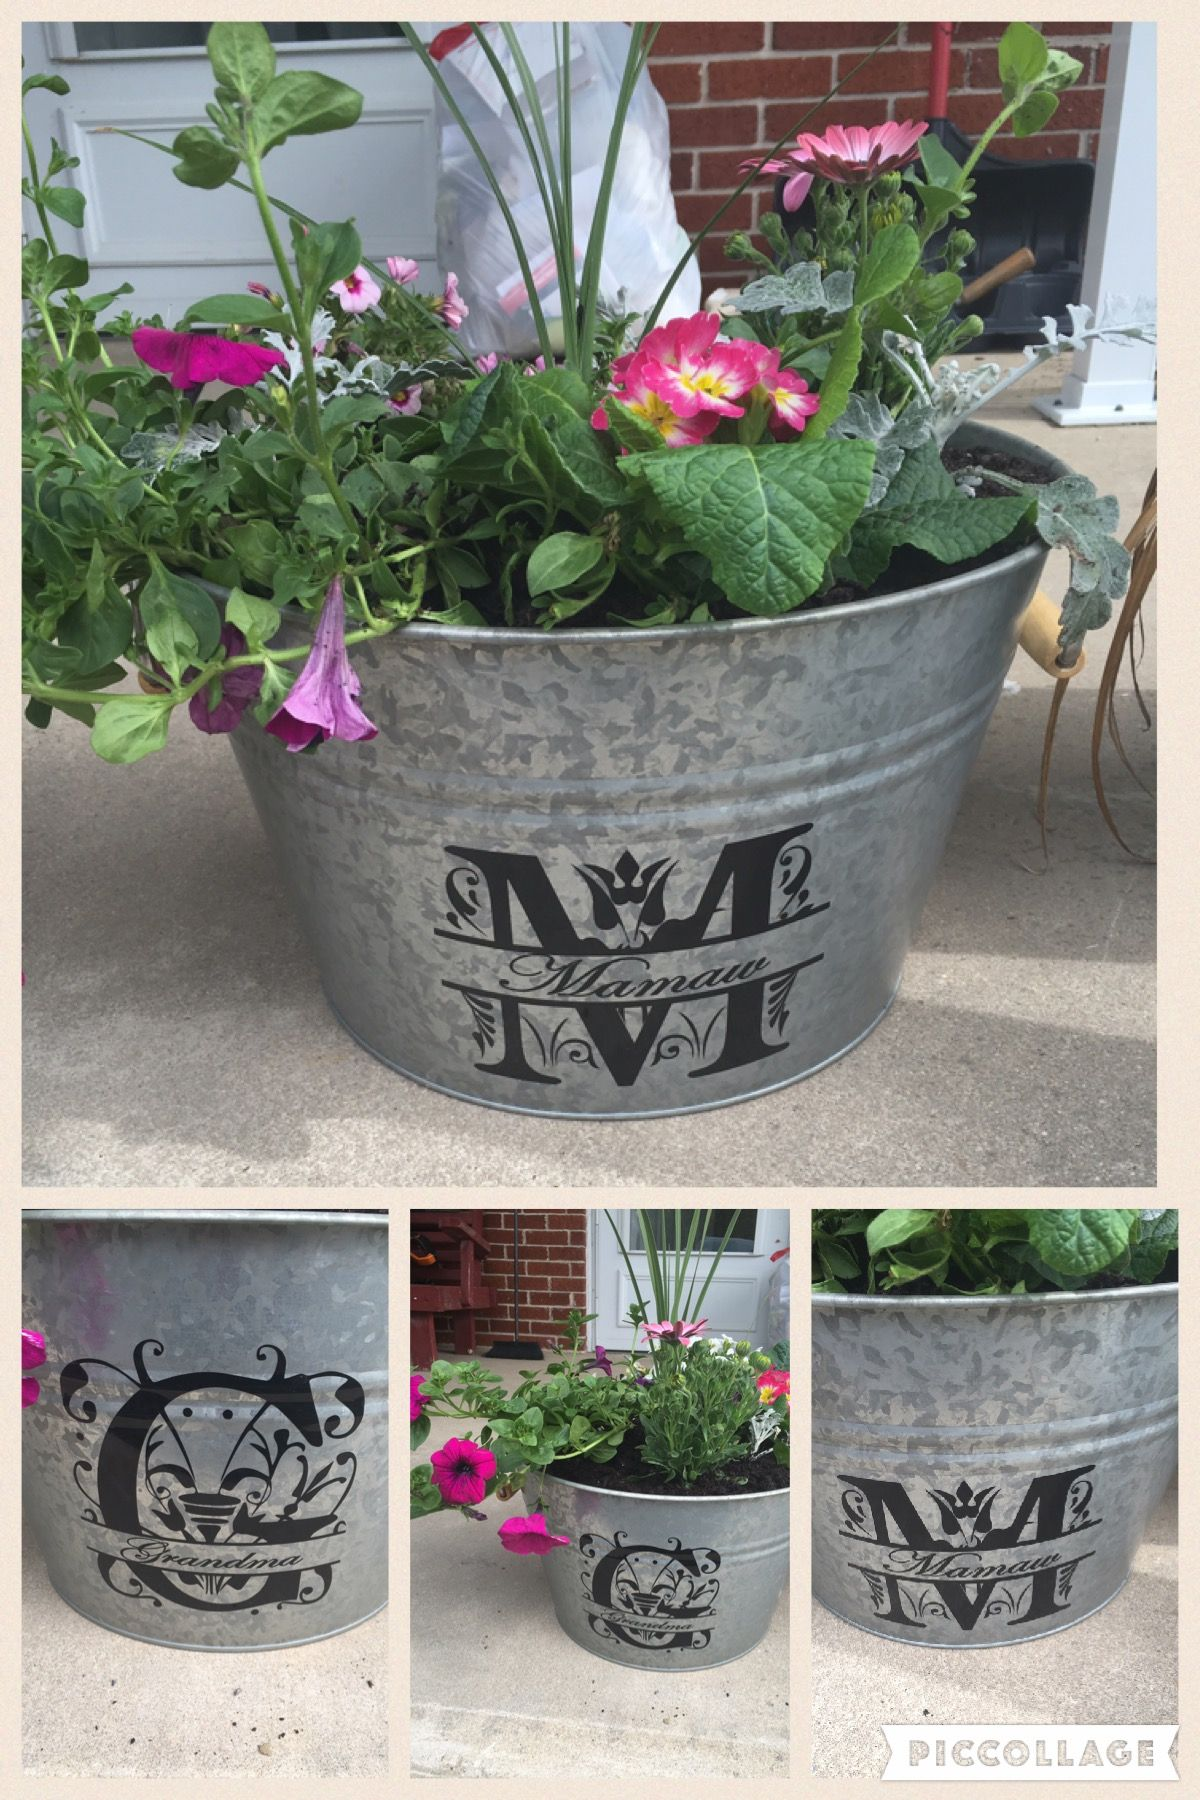 Monogrammed Flower Pots Flower Pots Diy Flower Pots Personalized Flower Pot